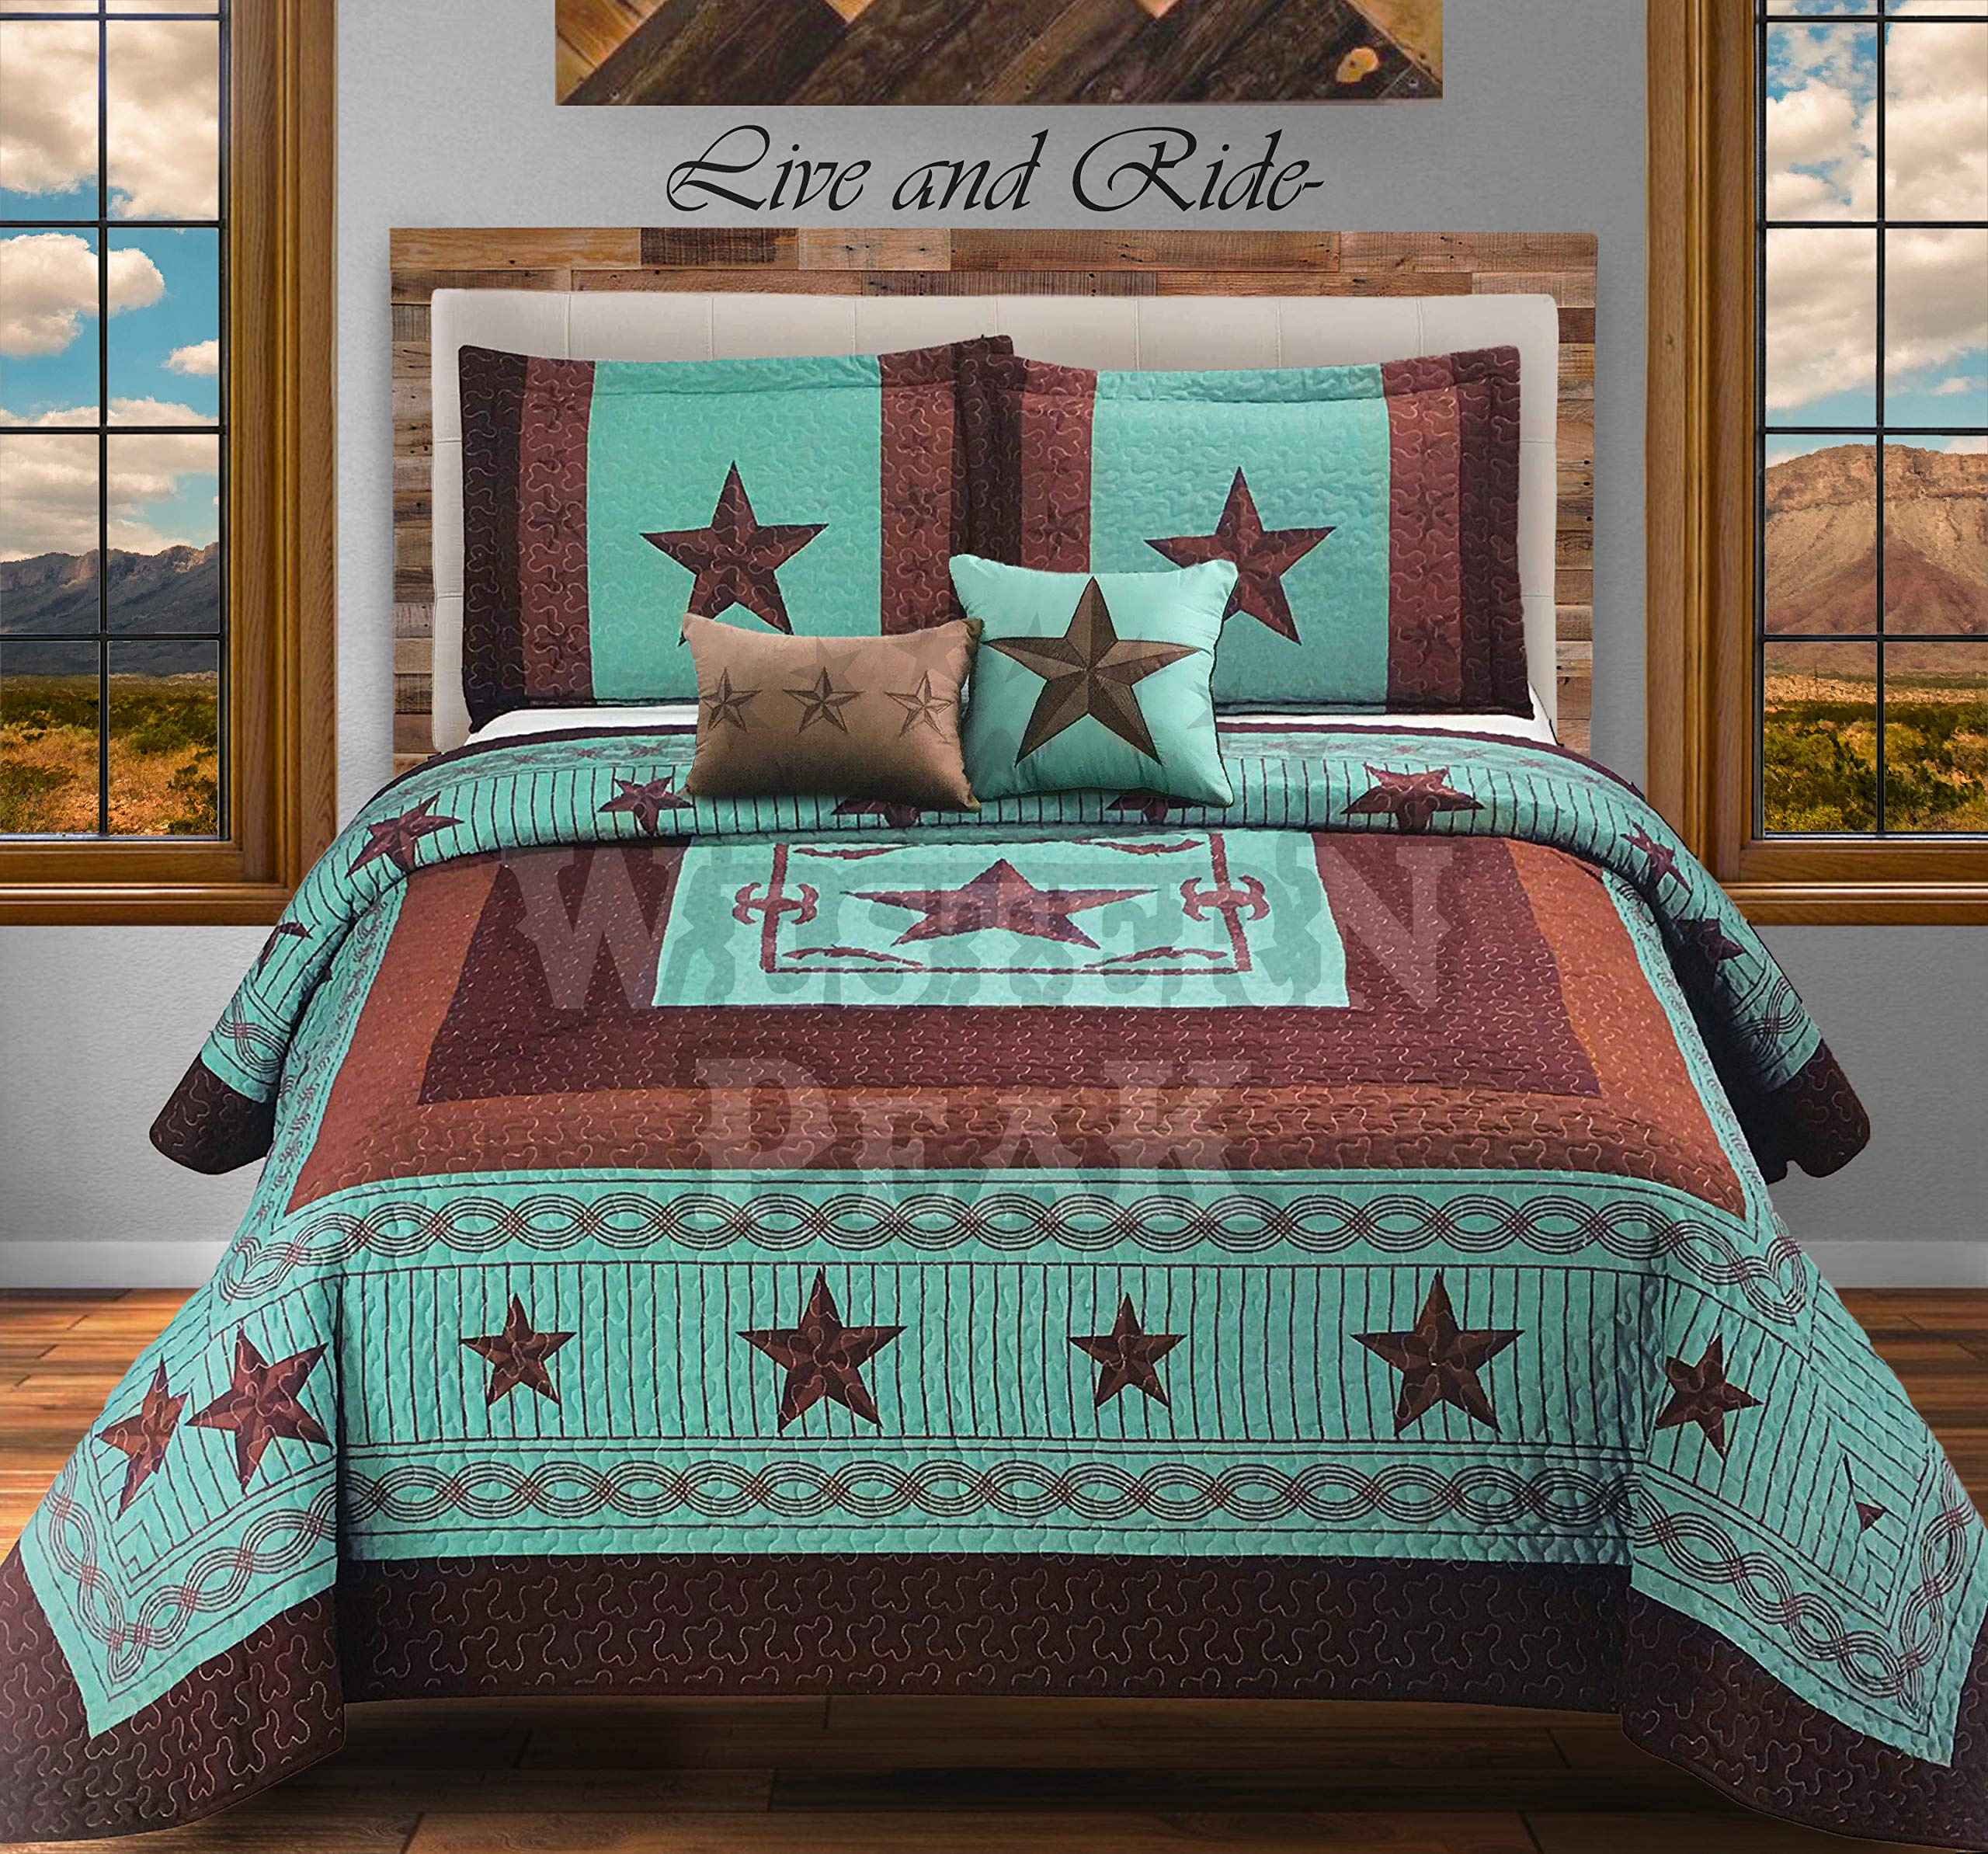 Western Peak 5 Pc Western Texas Cross Lodge Barbed Wire Quilt Bedspread Shams Pillow Oversize Comforter (Turquoise Star Gun, Queen)